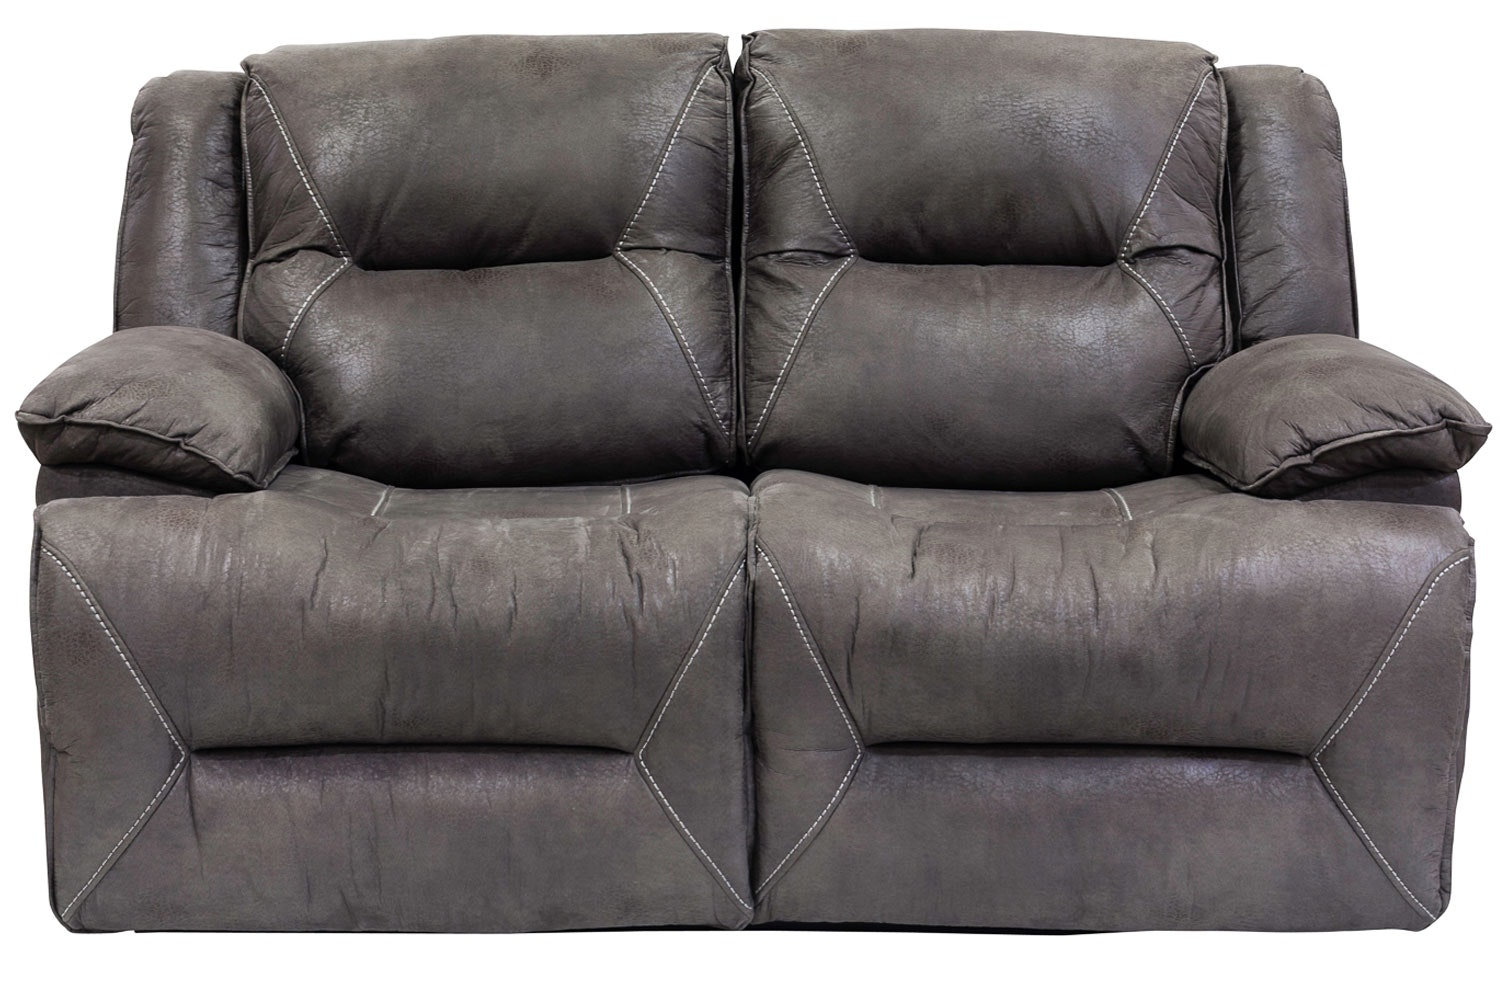 Madison 2 Seater Recliner | Manual